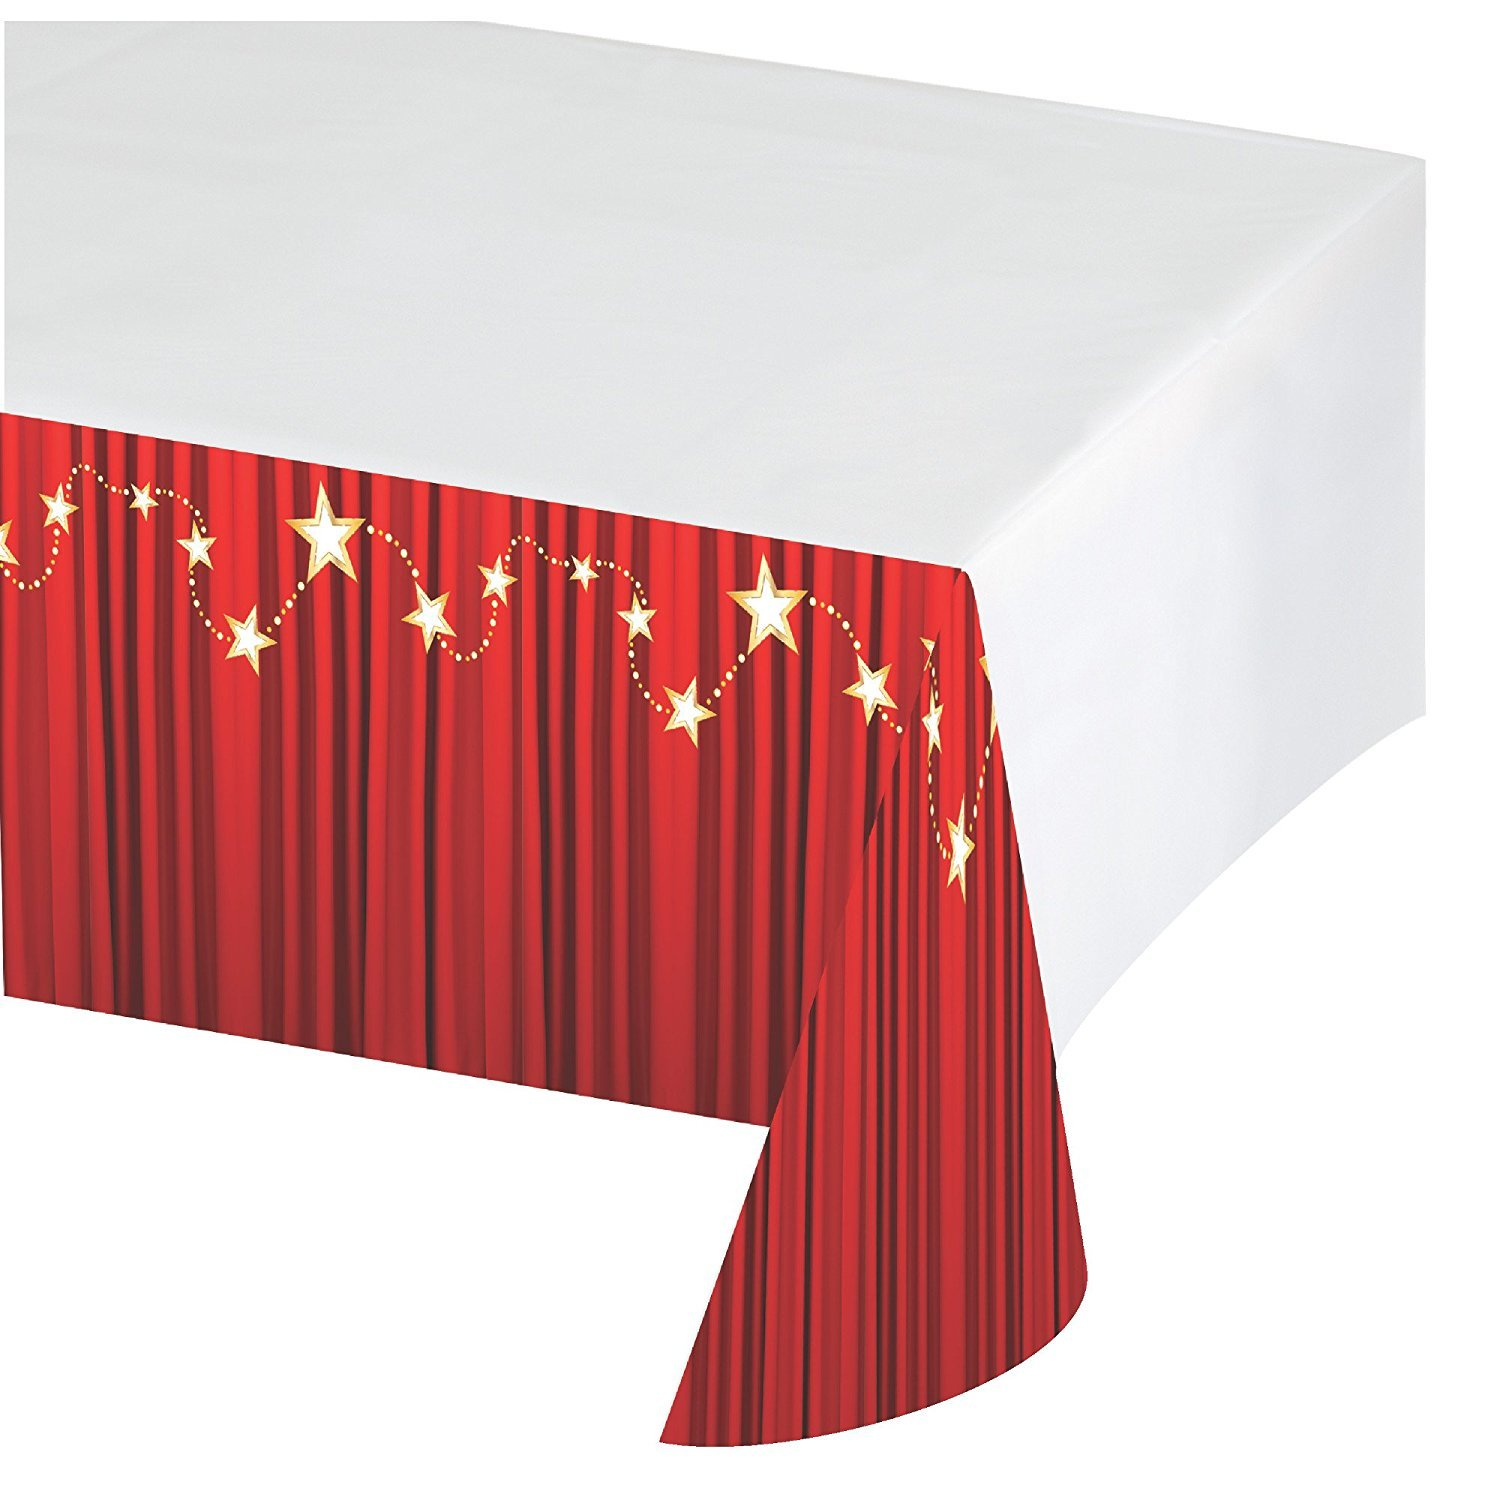 Hollywood Party Supplies Pack for 20 Guests: Large Plastic Plates, Napkins, Cups & Table Cover